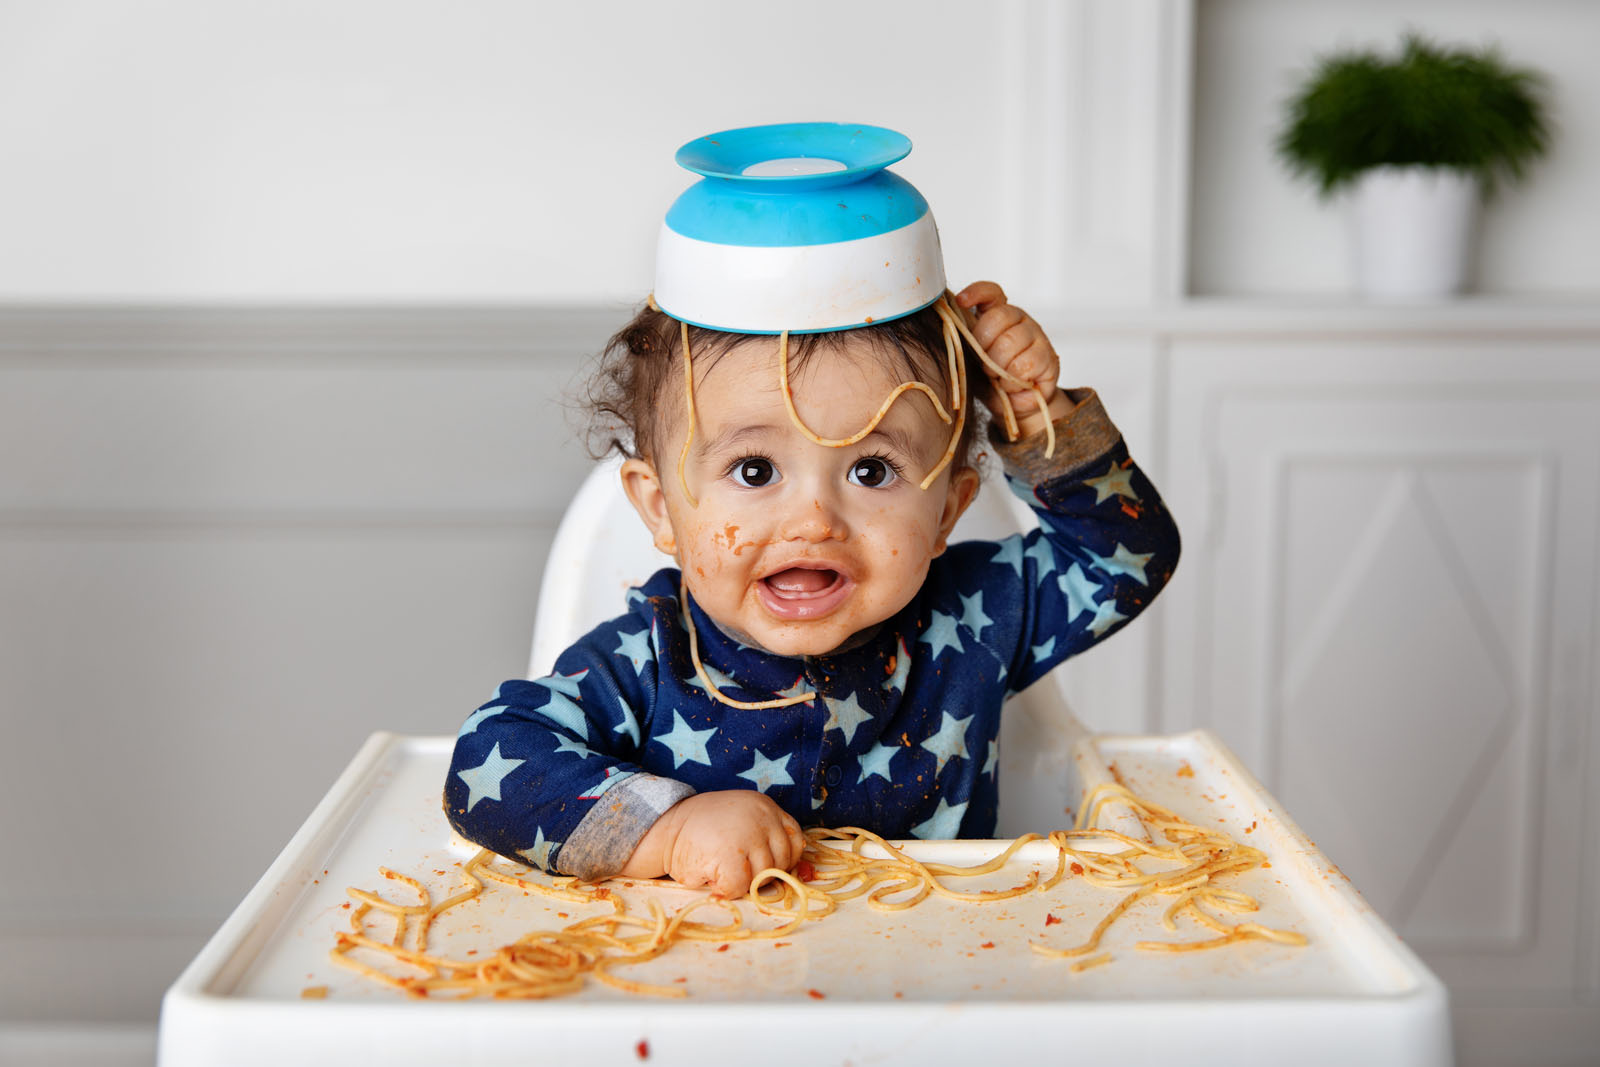 messy-toddler-with-spaghetti-on-head-lisa-tichane